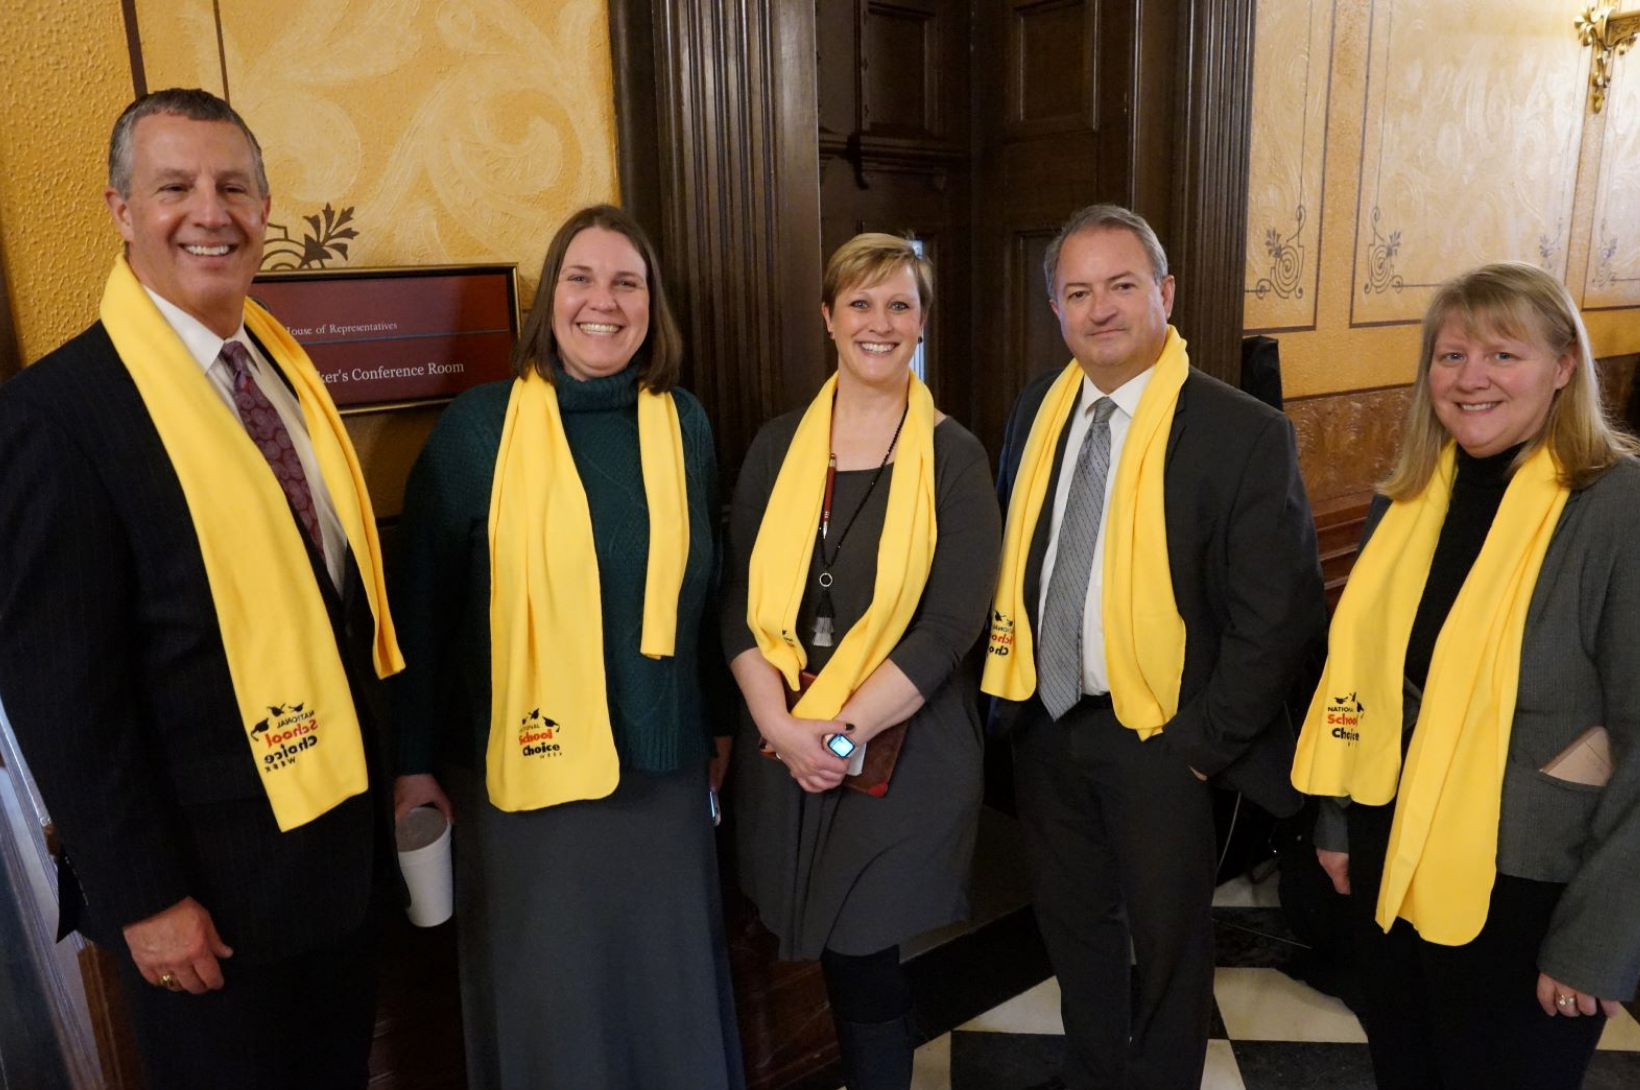 A group of charter advocates stand inside the Michigan state capitol building.